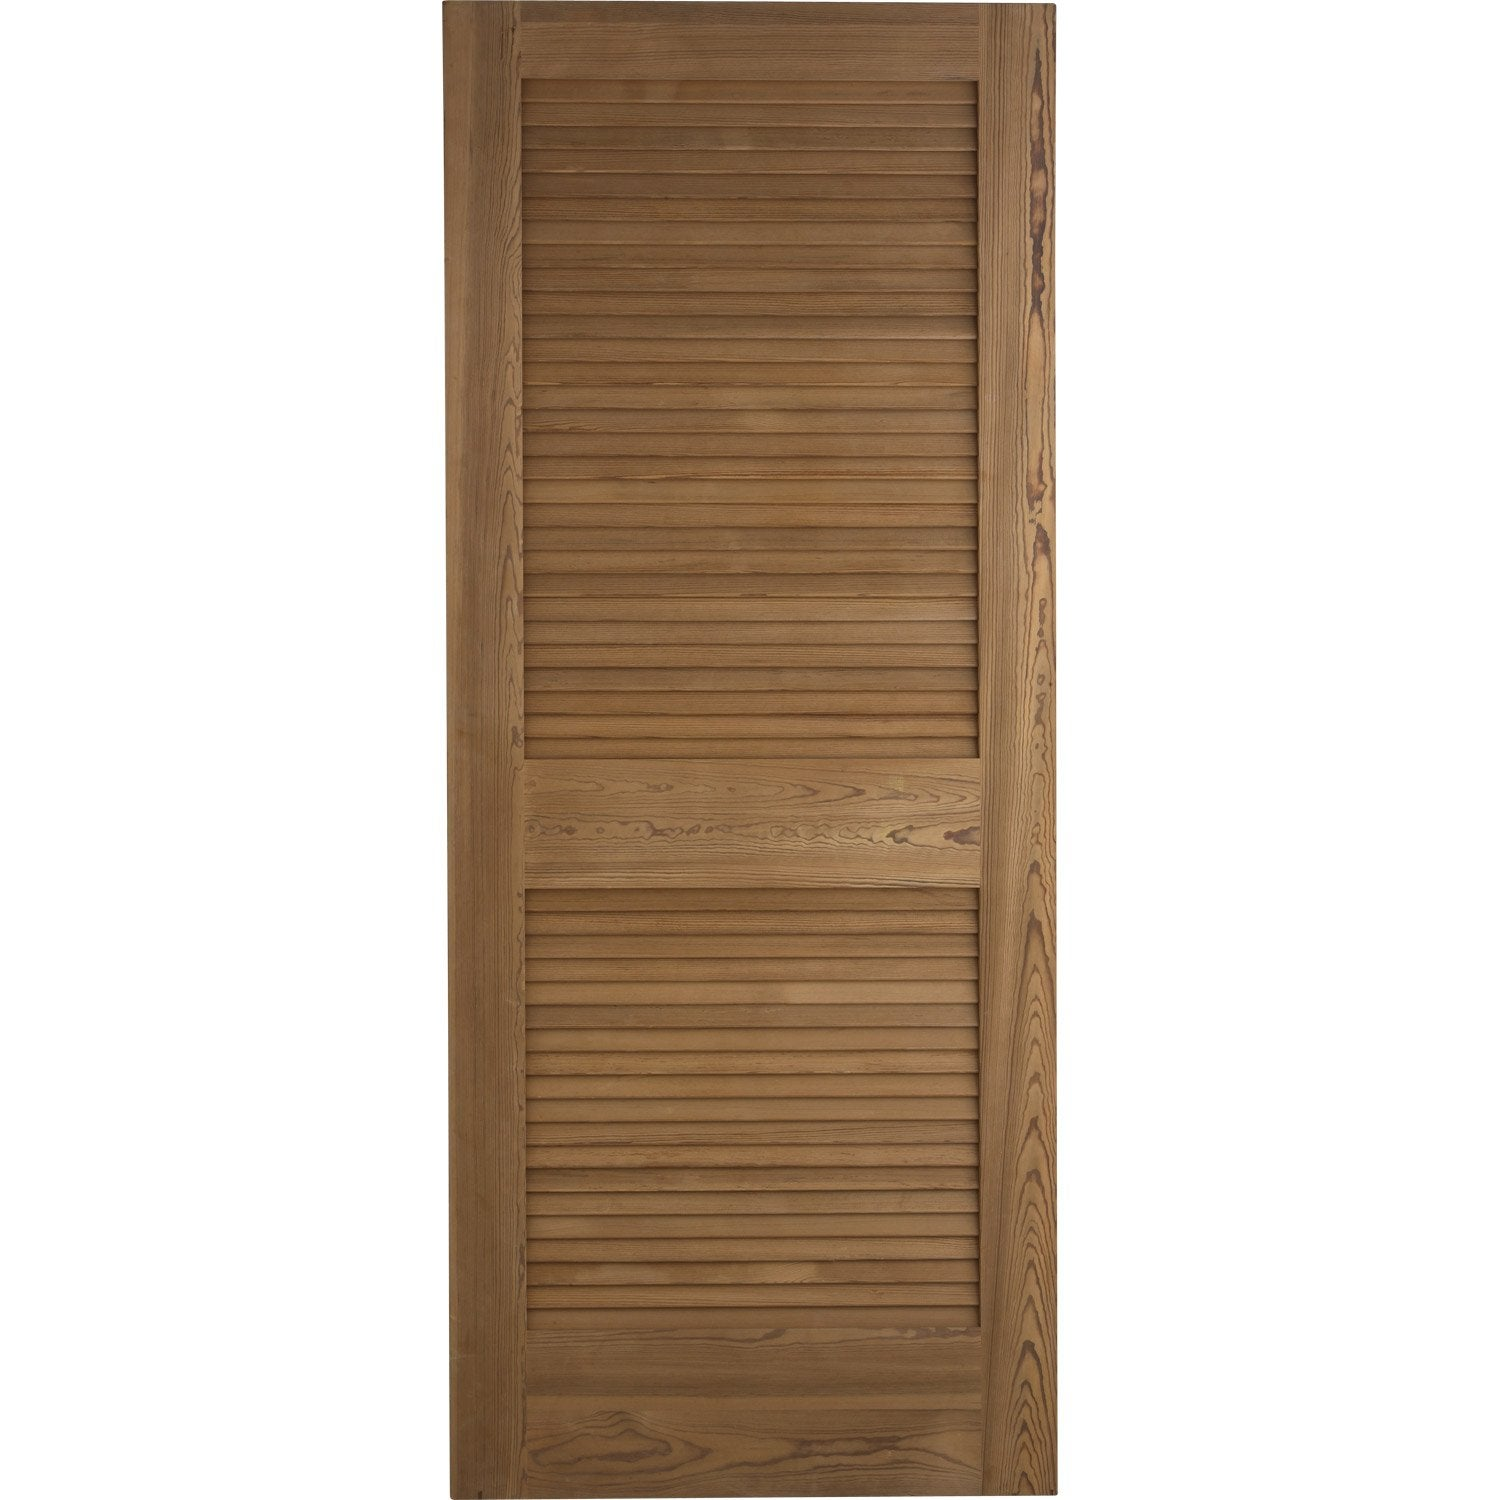 Porte coulissante pin plaqu marron java artens 204 x 73 for Porte de placard salle de bain leroy merlin